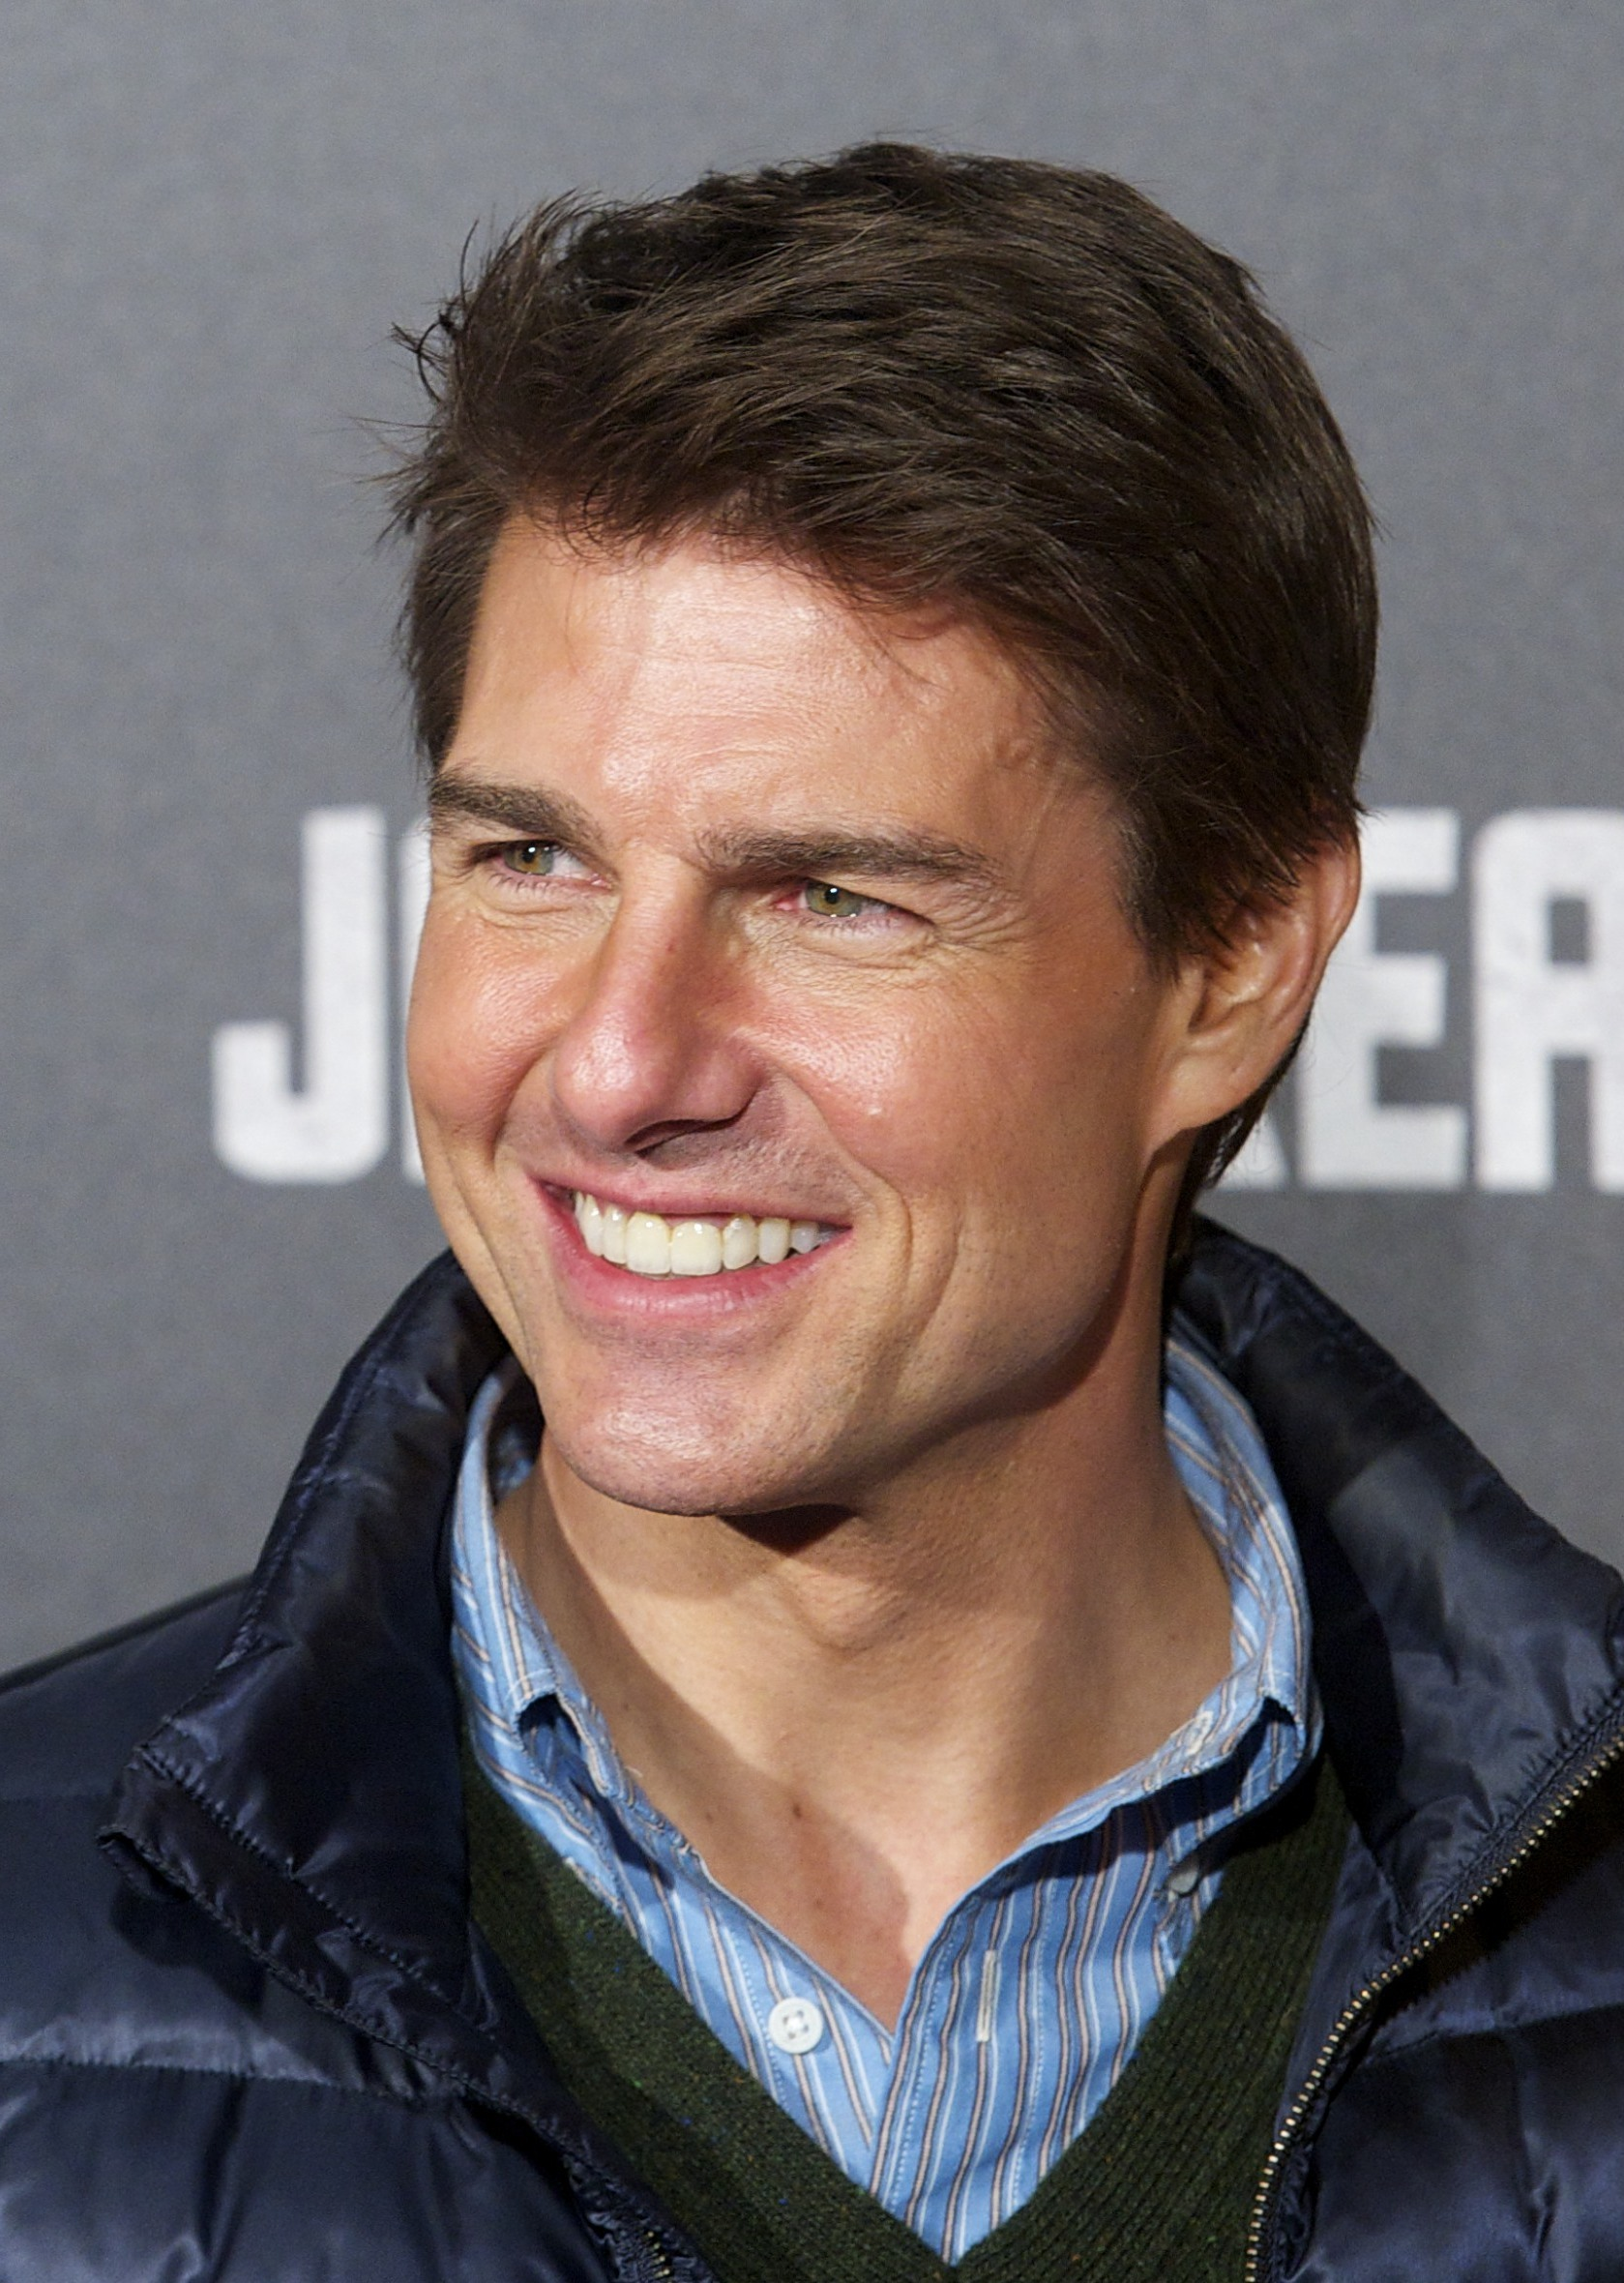 tom cruise images tom hd wallpaper and background photos (33462521)